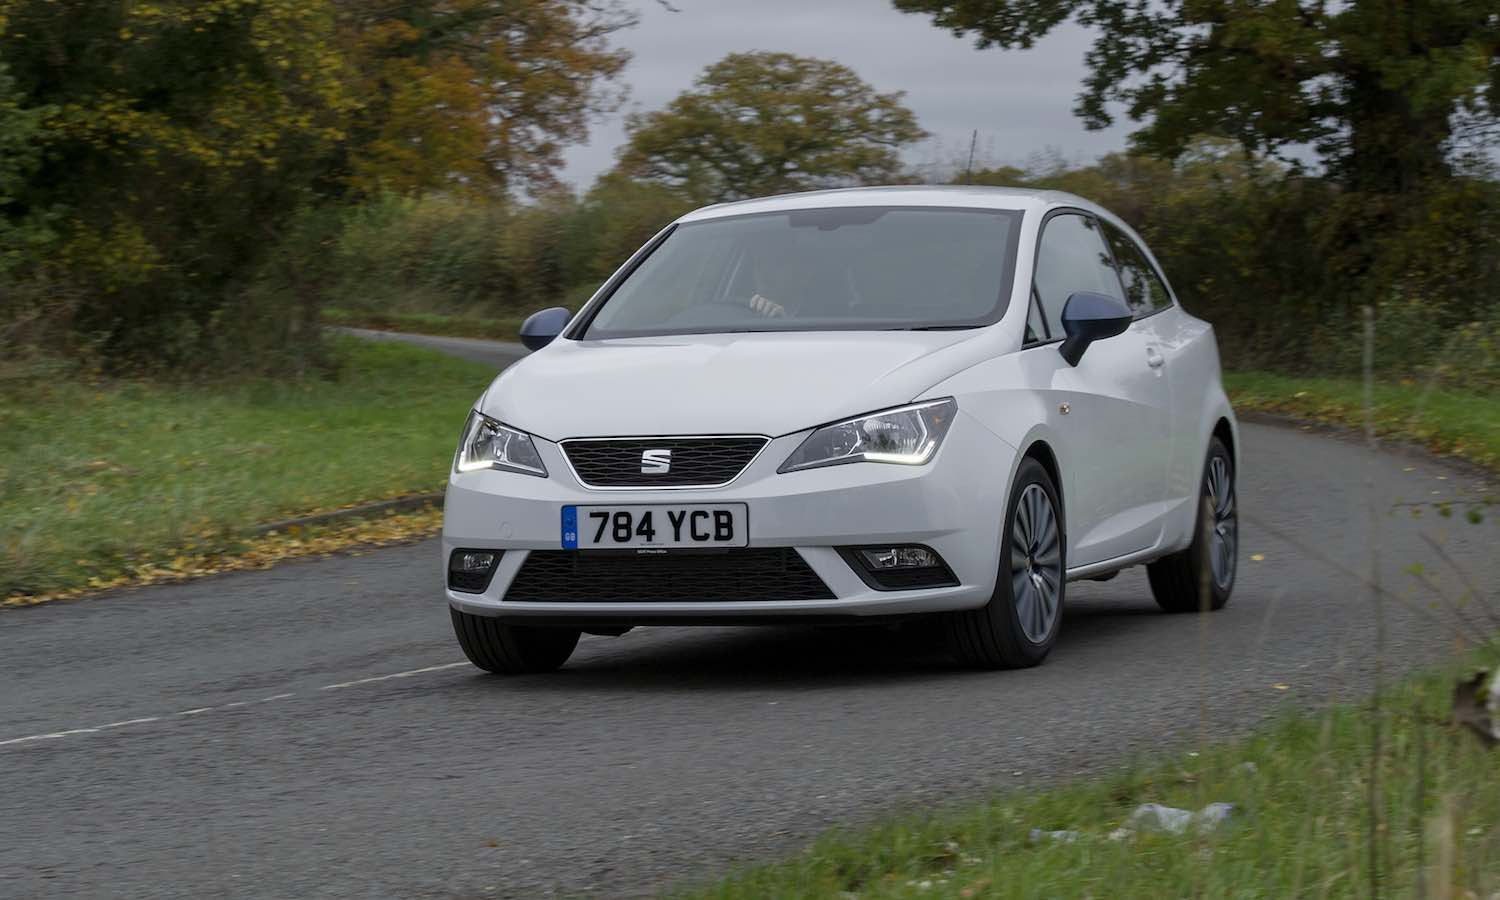 SEAT-Ibiza-SC-review-featured